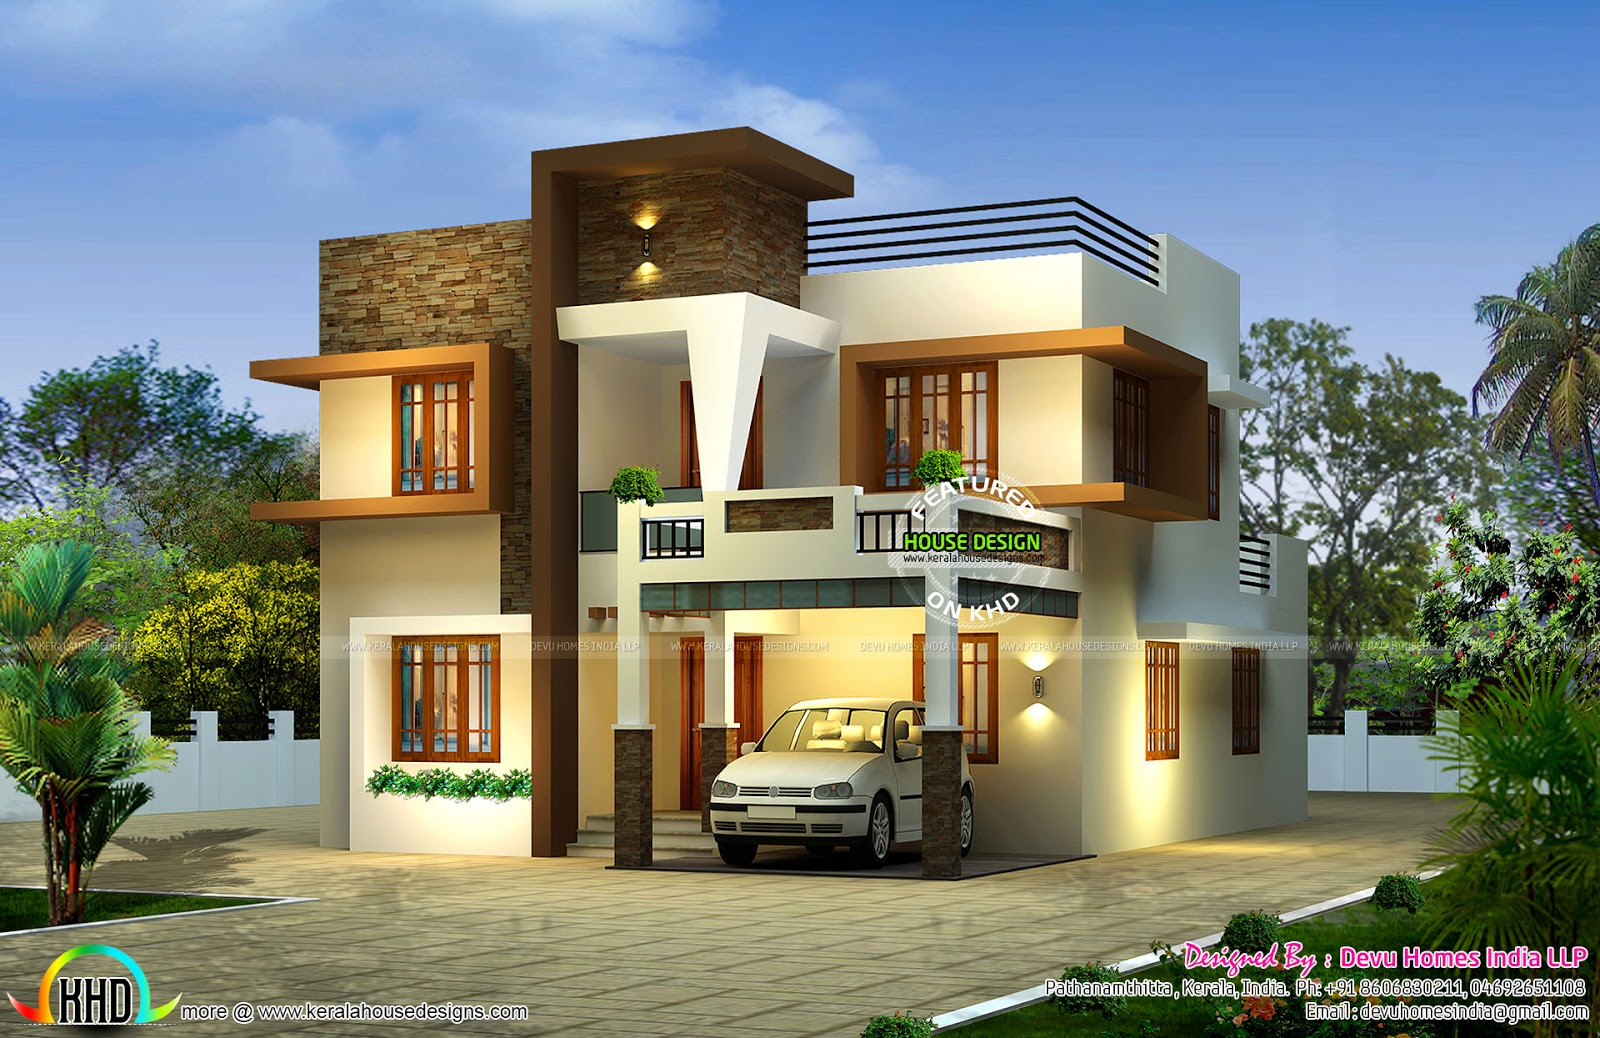 New House Design Of September 2016 Kerala Home Design And Floor Plans